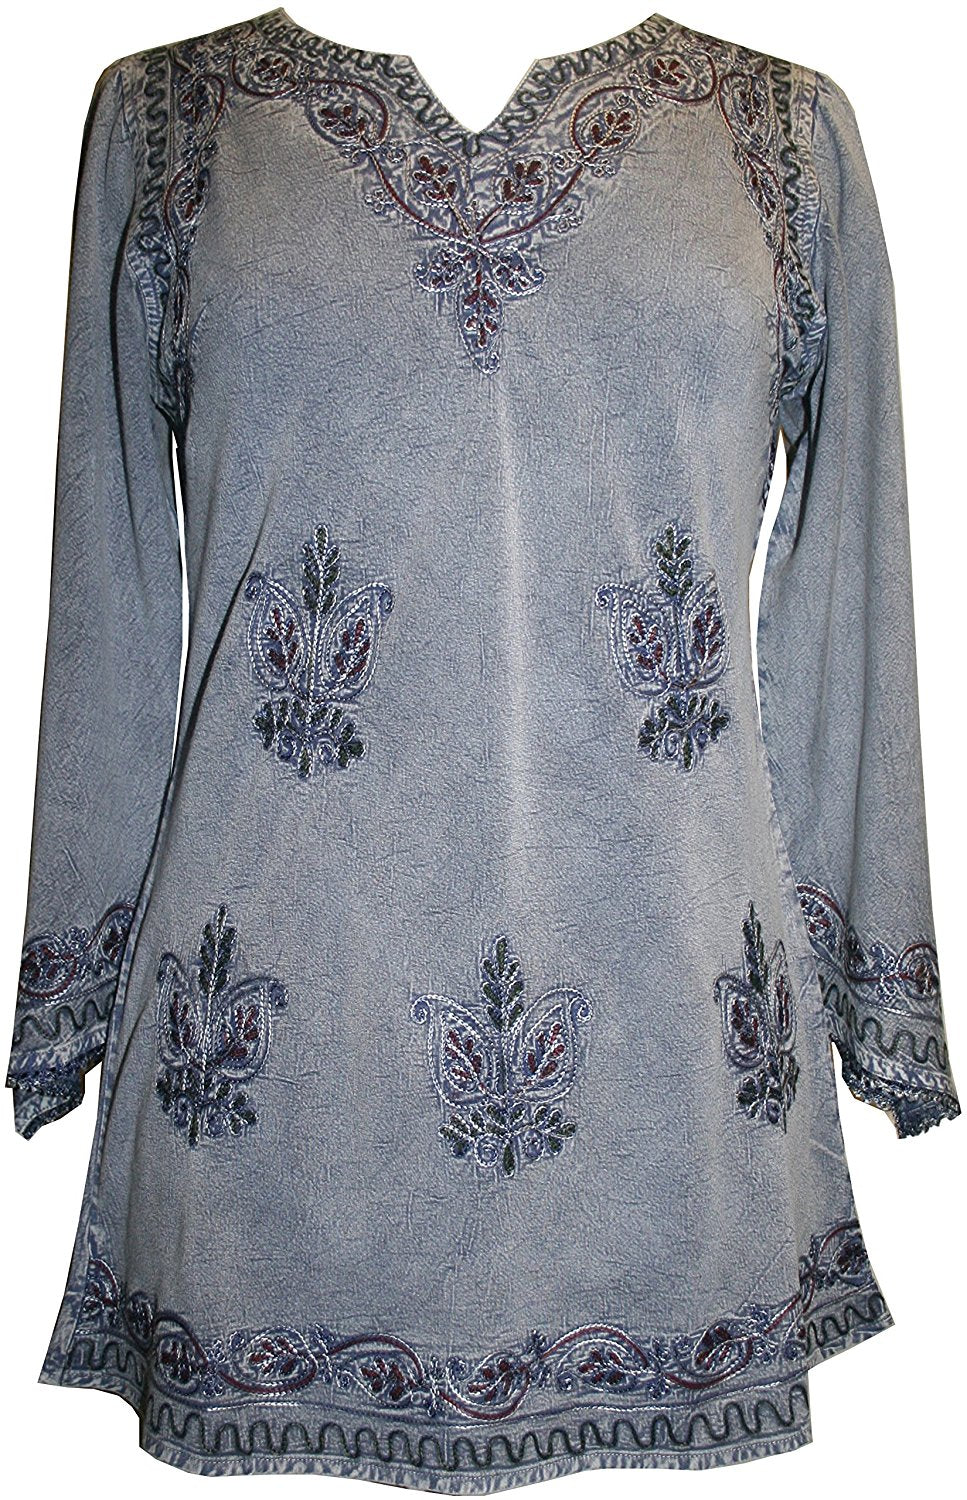 Embroidered Rayon Renaissance Blouse - Agan Traders, Lilac